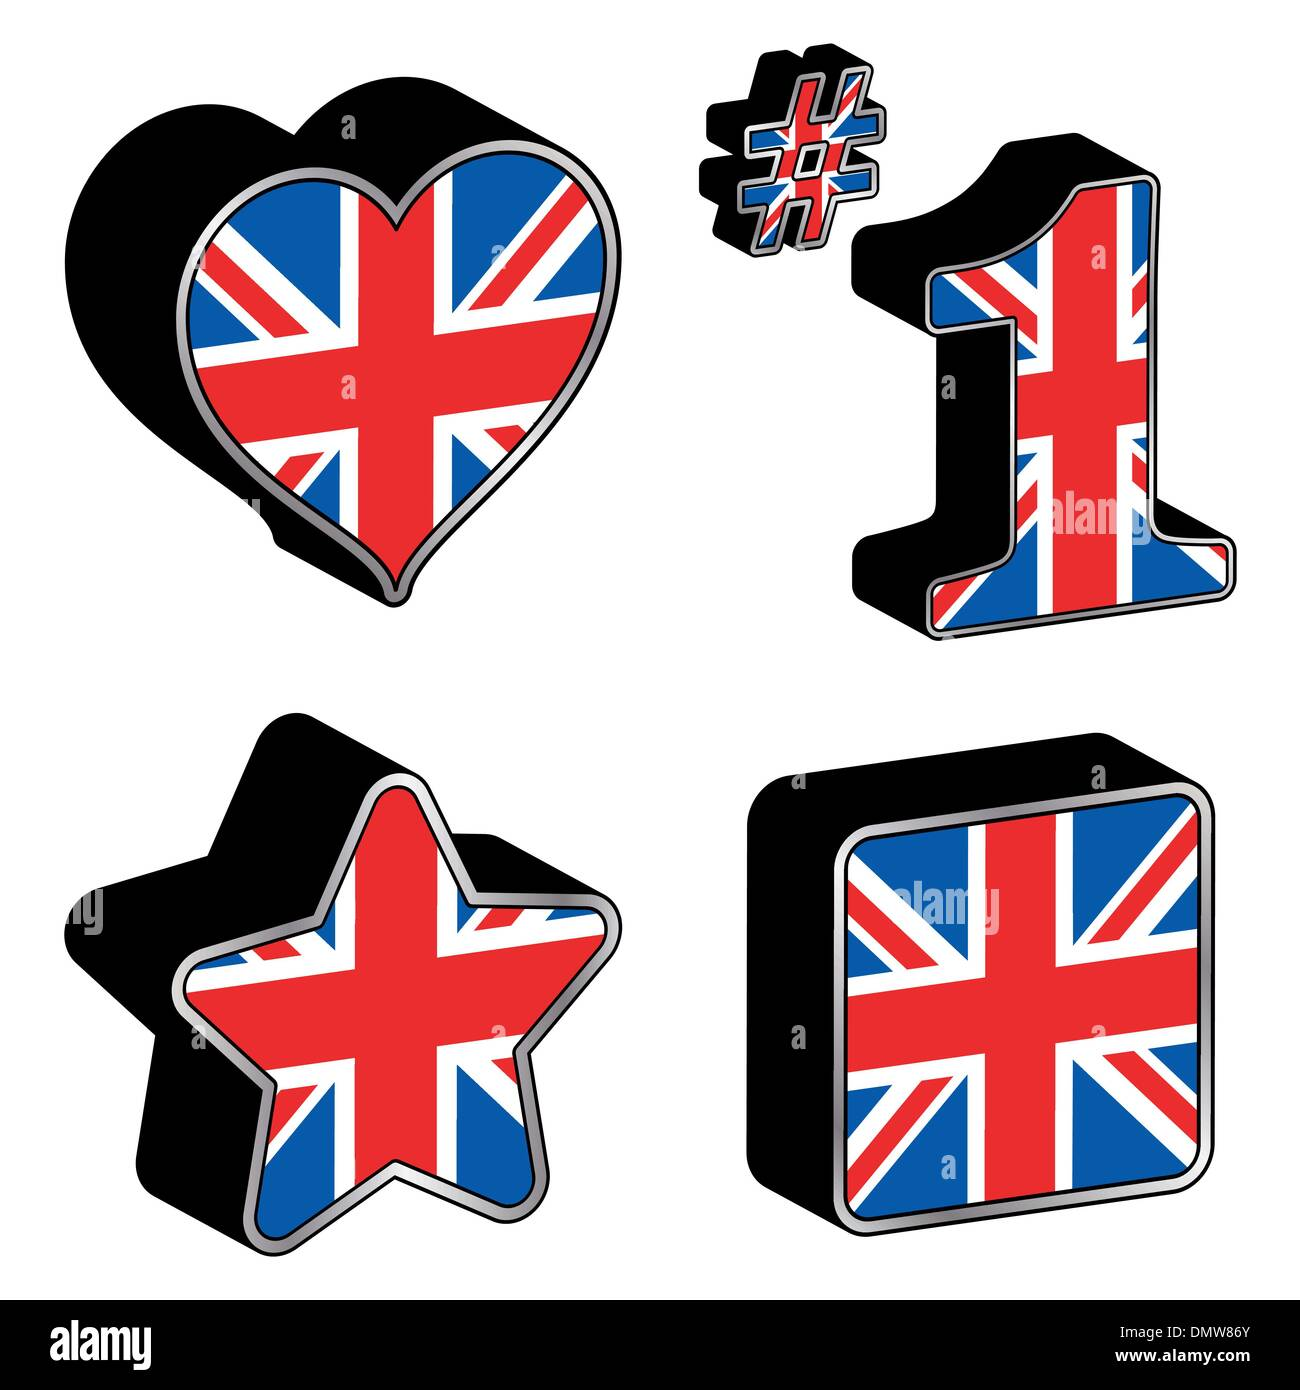 great britain icons stock vector art illustration vector image